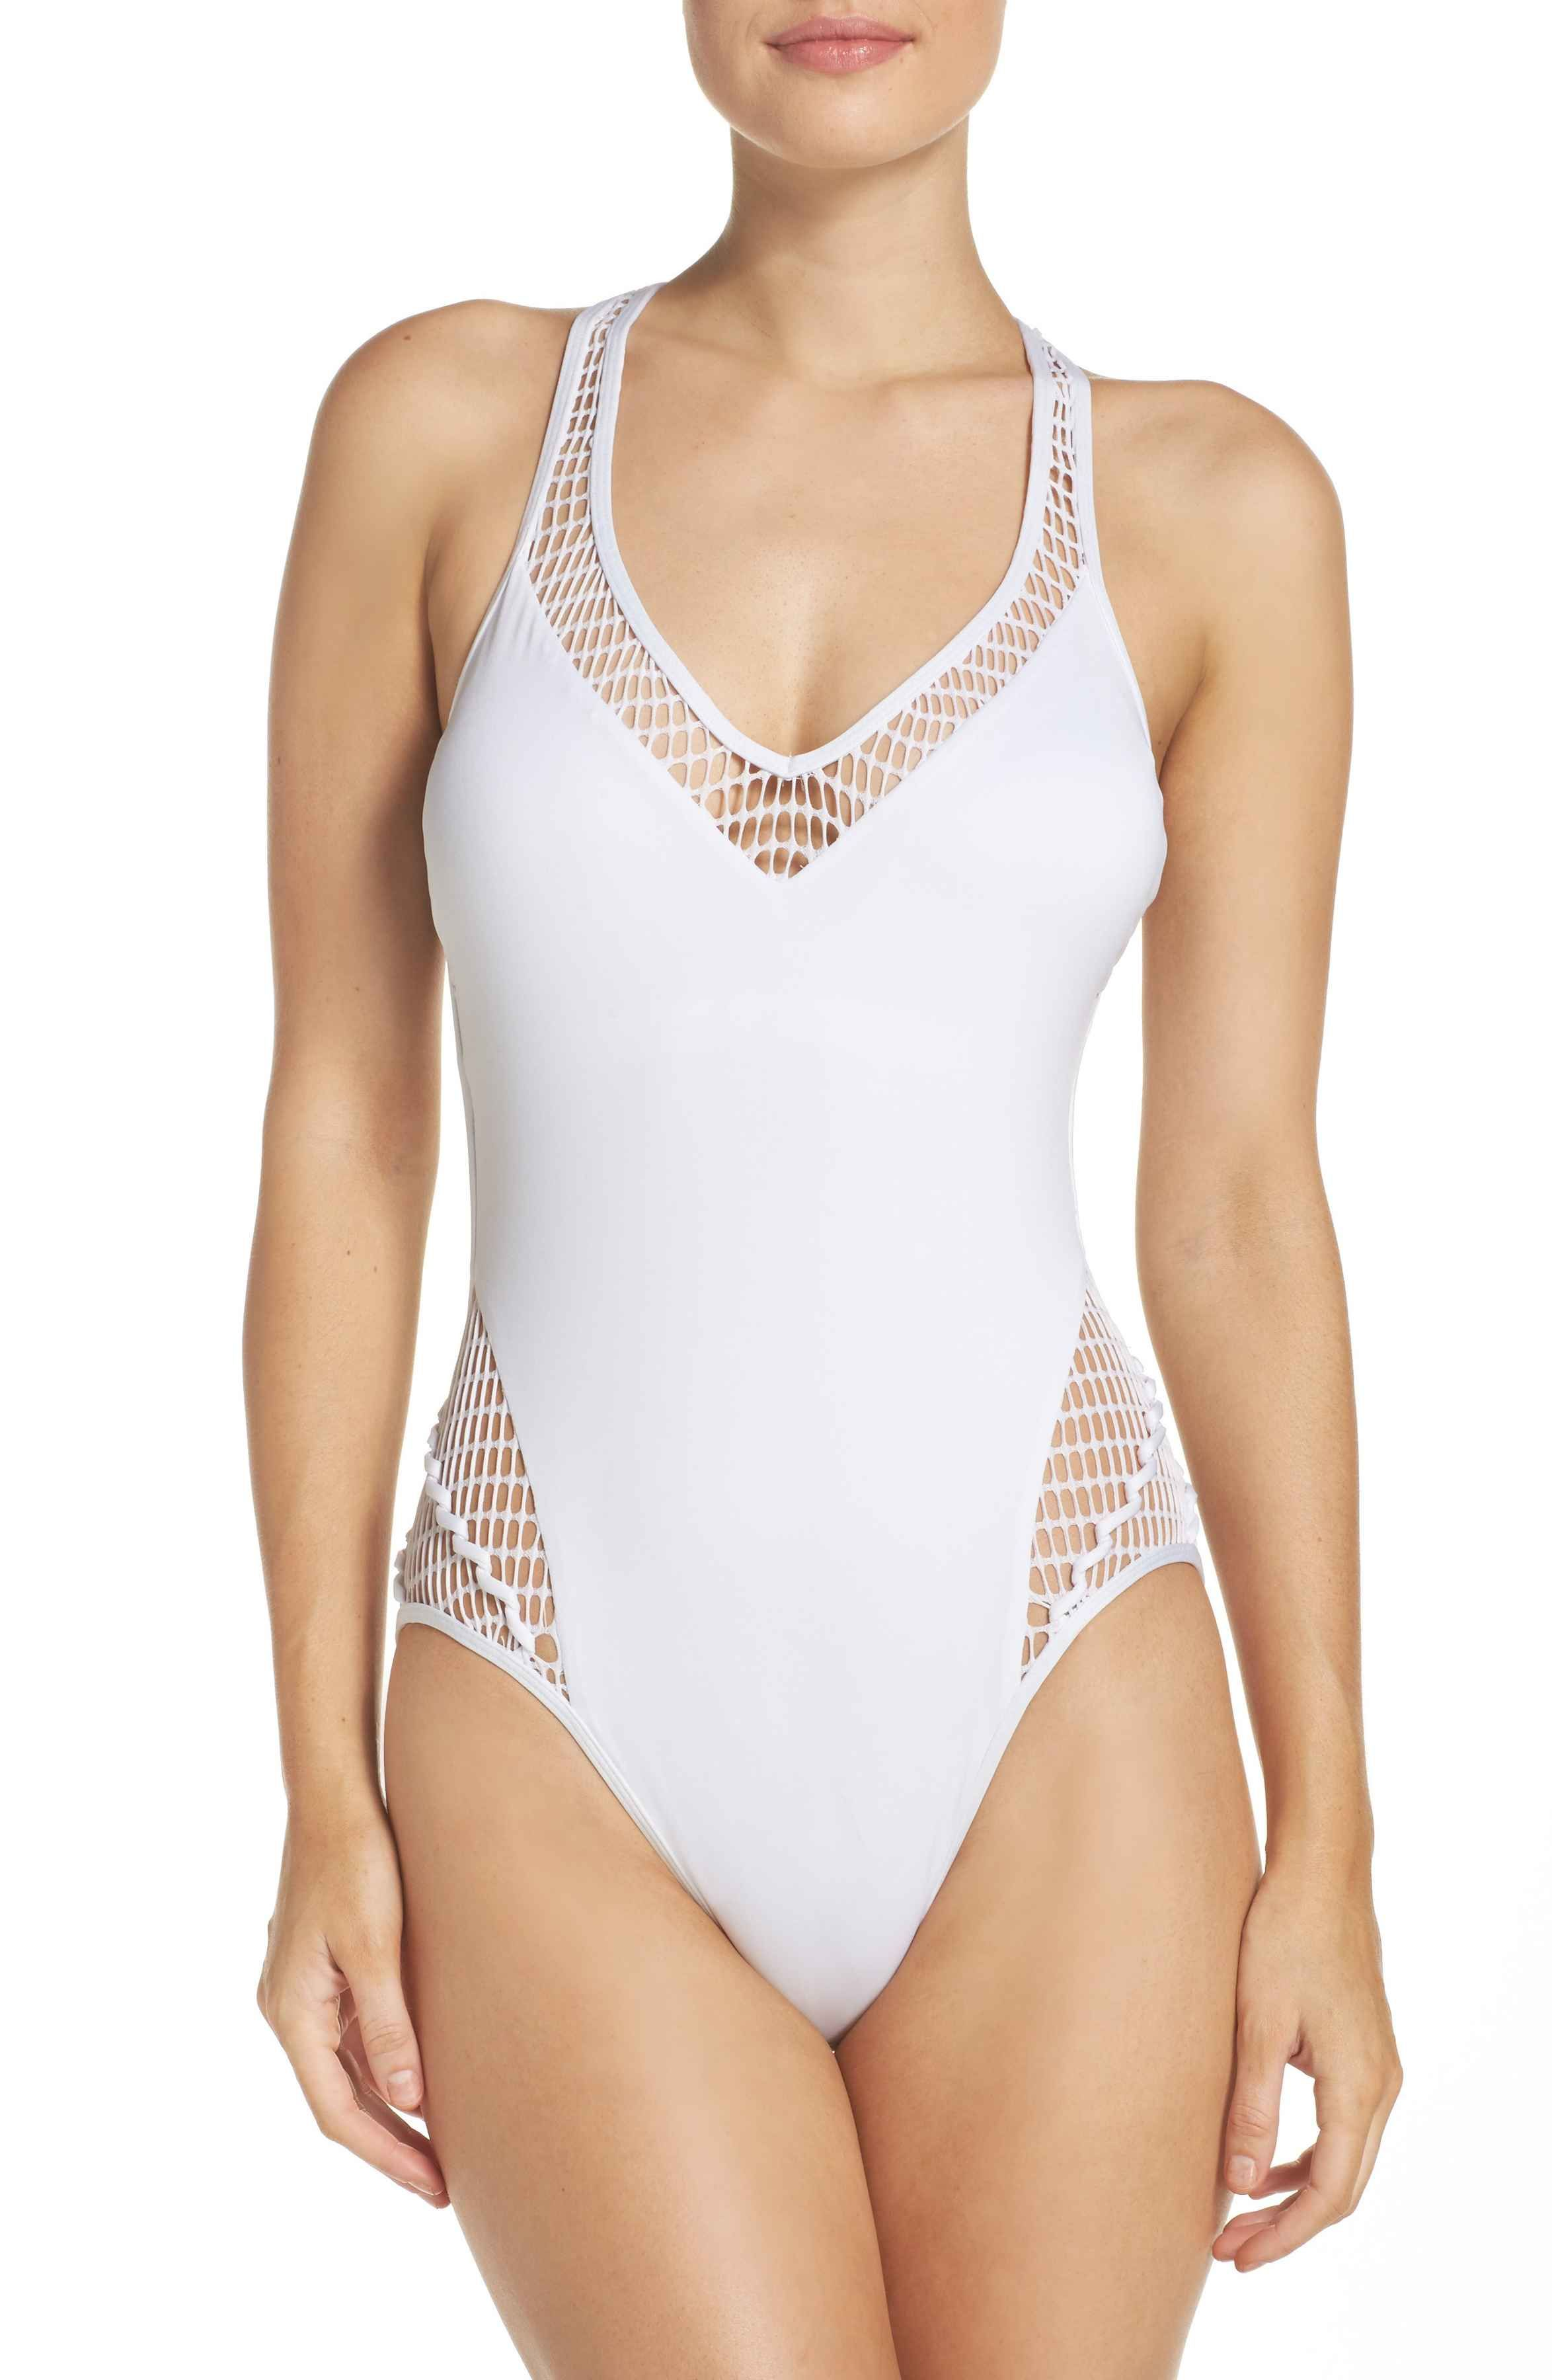 b6e3915eec Main Image - Kenneth Cole New York Wrapped in Love One-Piece Swimsuit